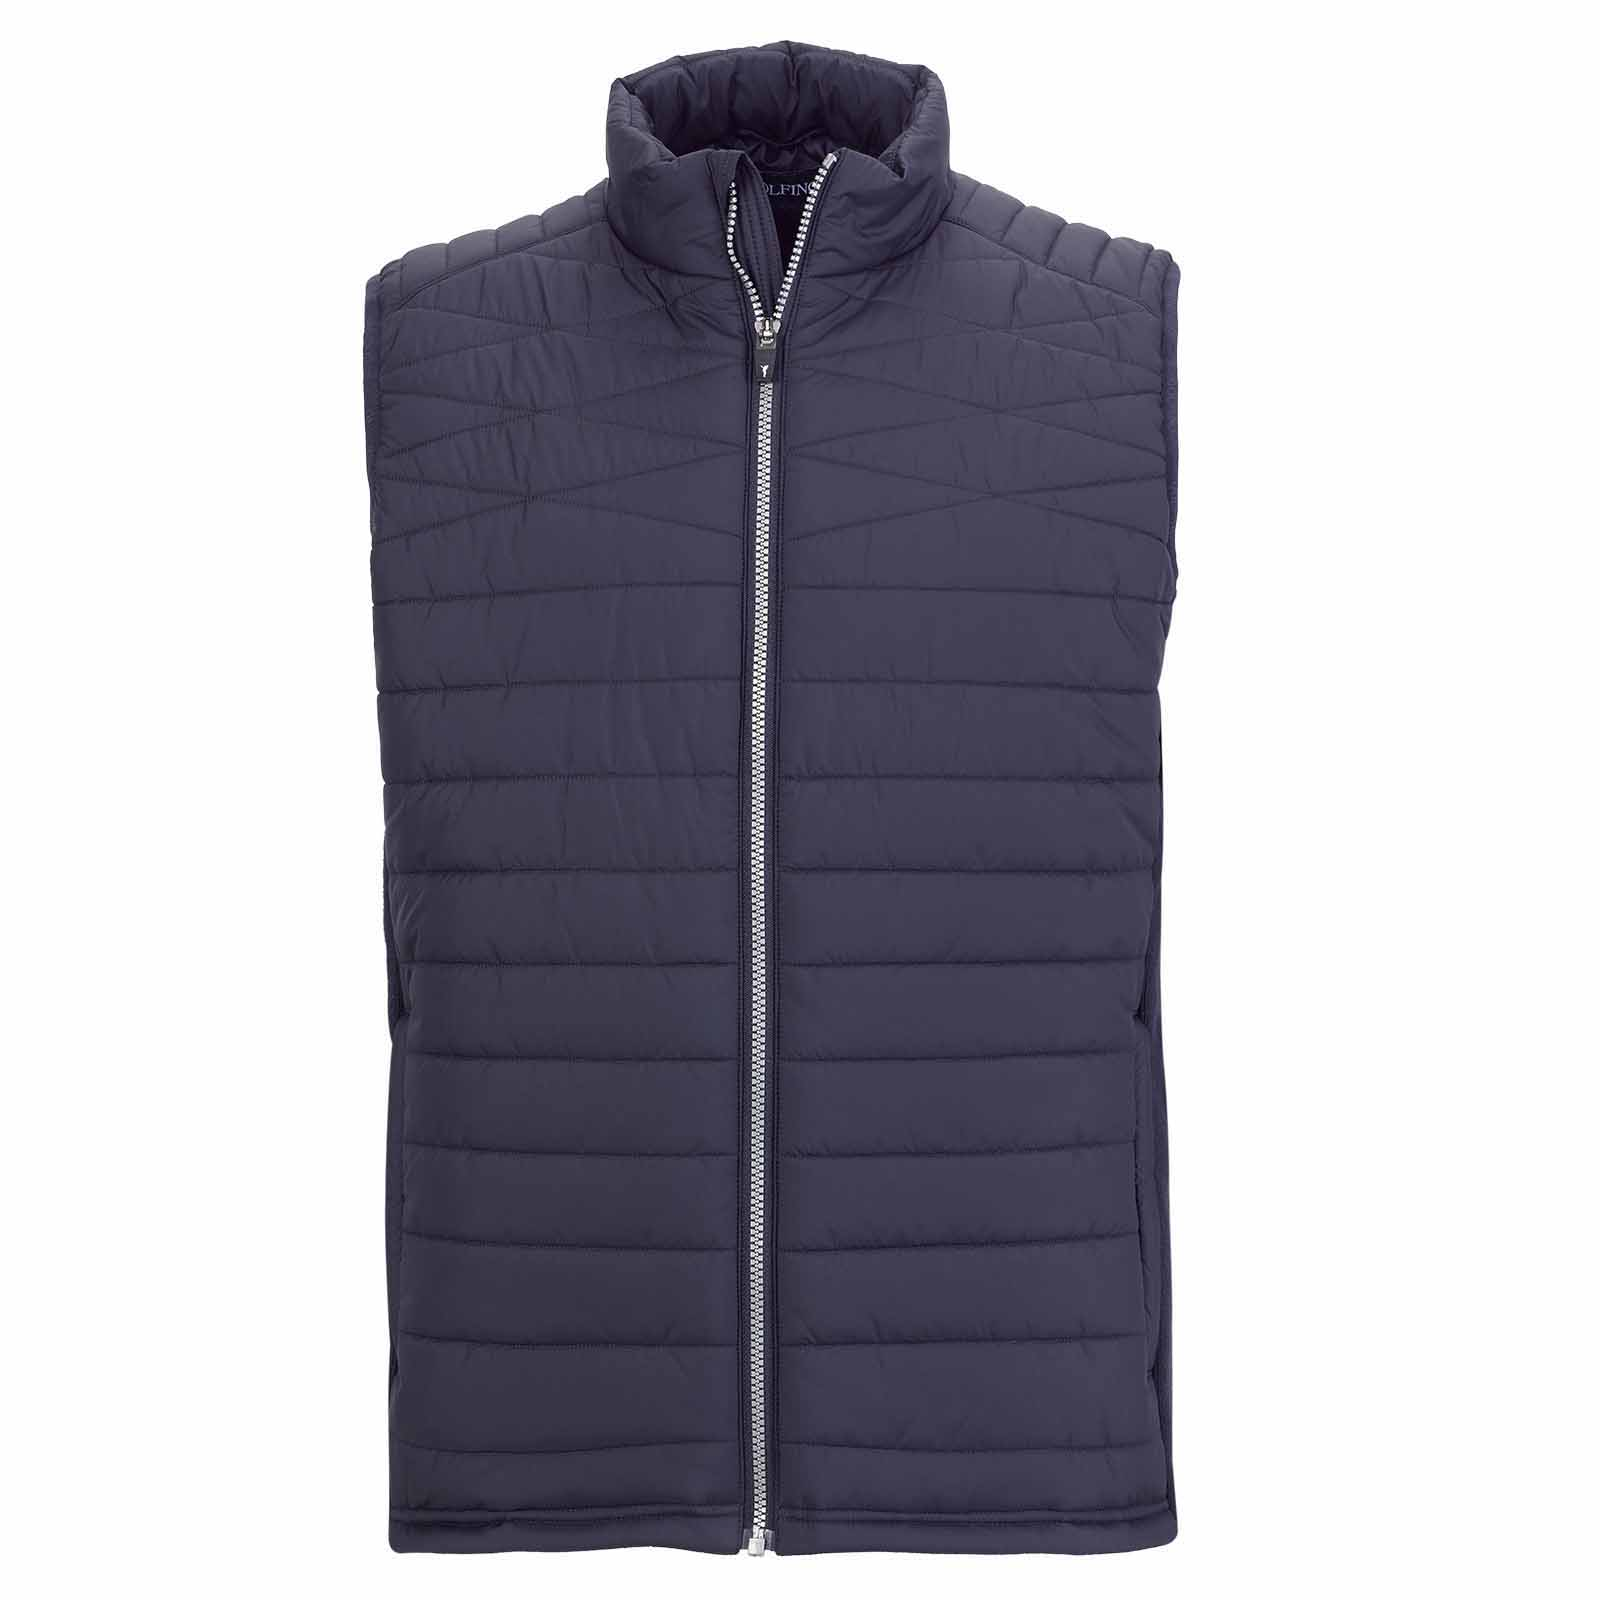 Padded Wind Protection men's golf waistcoat with elasticated sides